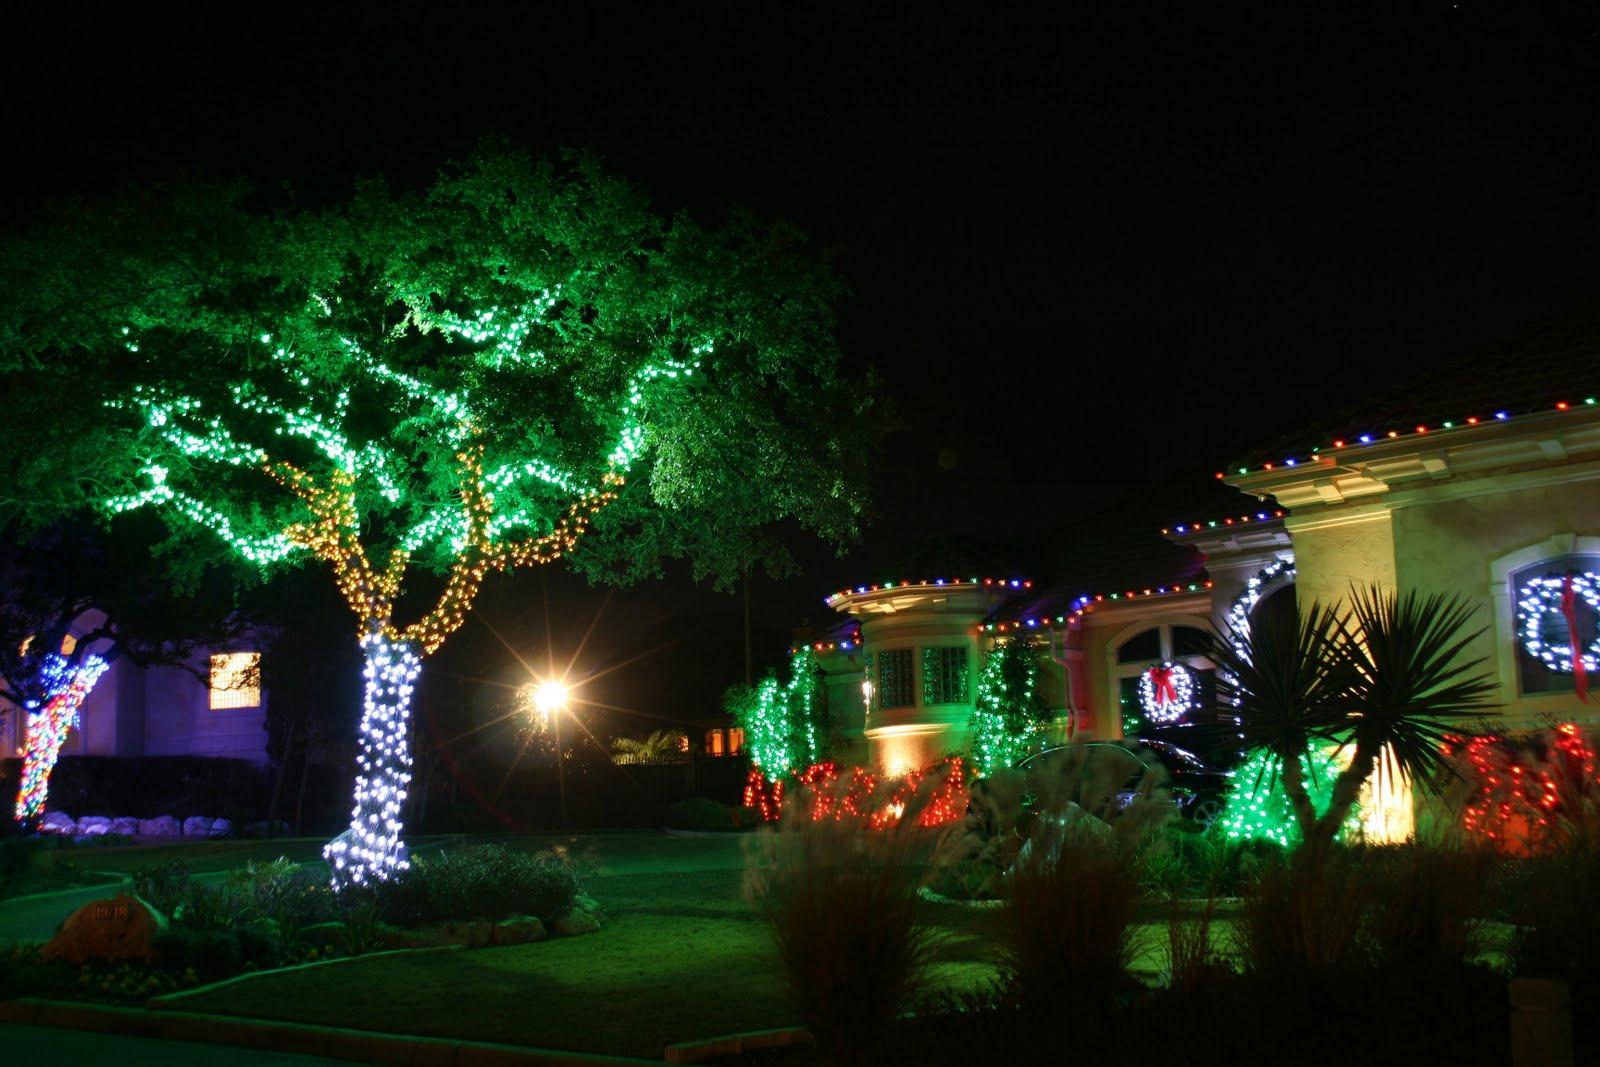 Patio Christmas Lights  Fascinating Articles and Cool Stuff Christmas Outdoor